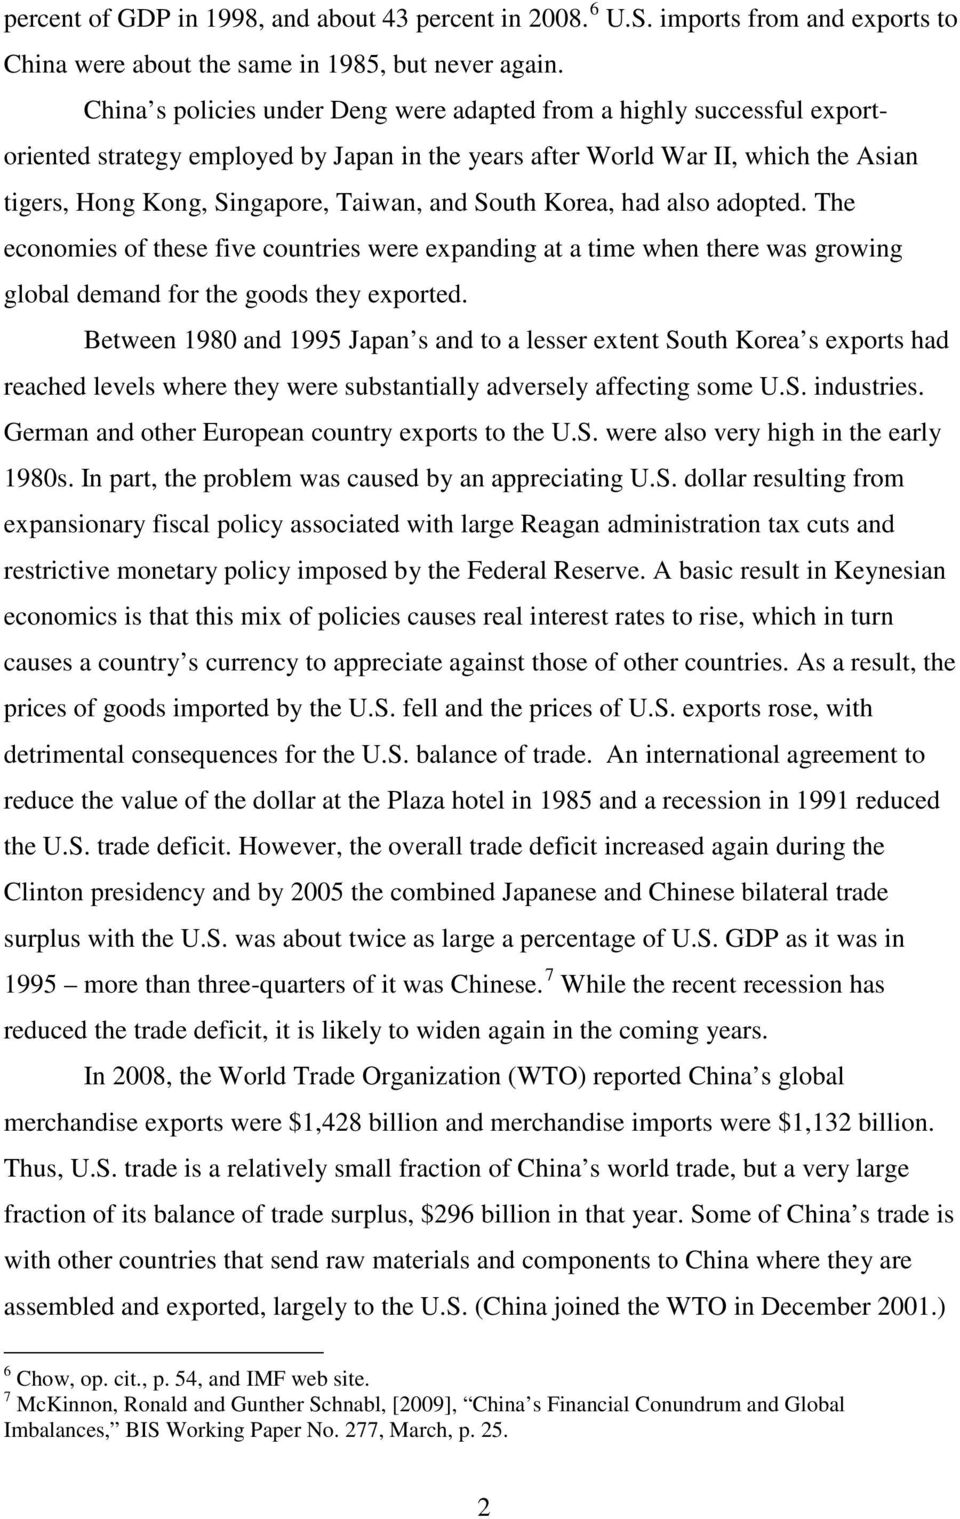 South Korea, had also adopted. The economies of these five countries were expanding at a time when there was growing global demand for the goods they exported.